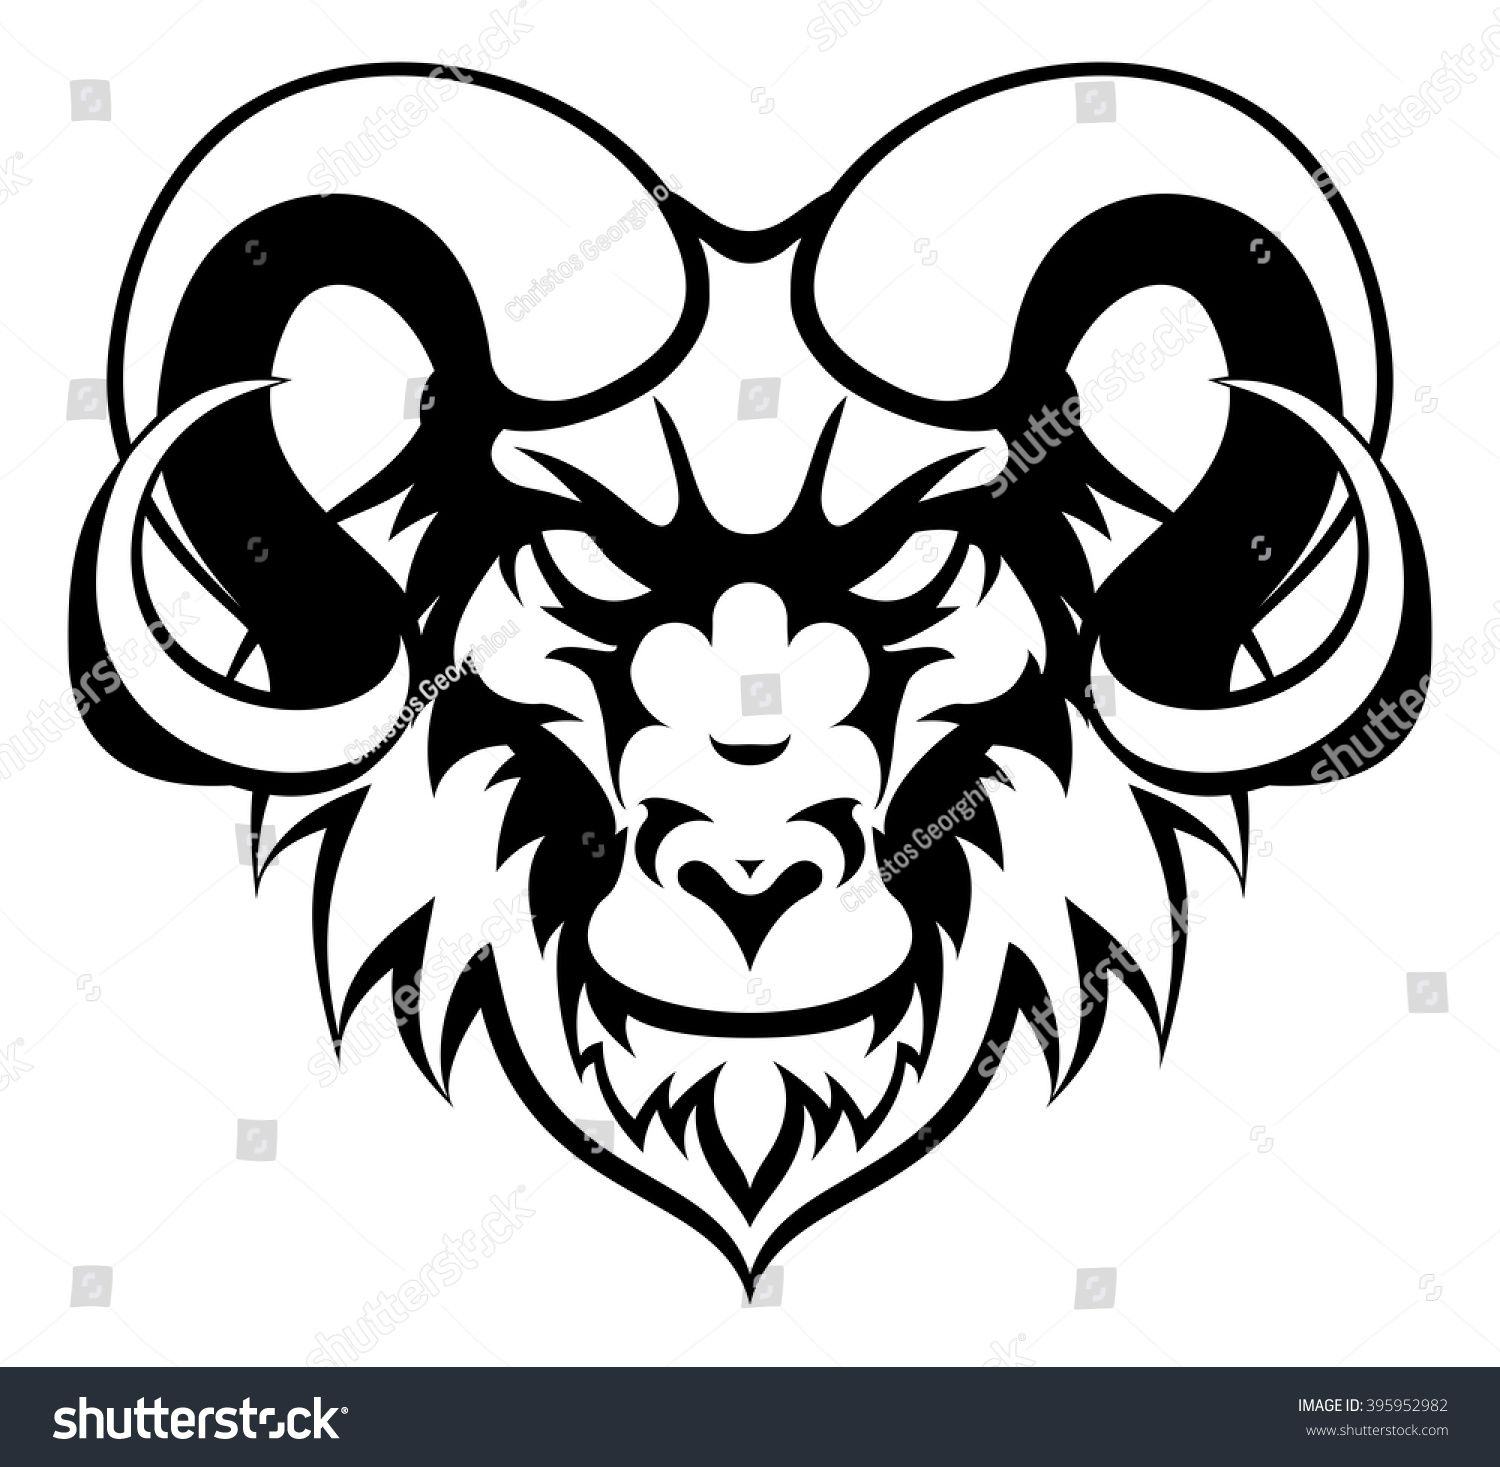 An illustration of a ram animal mean sports mascot head